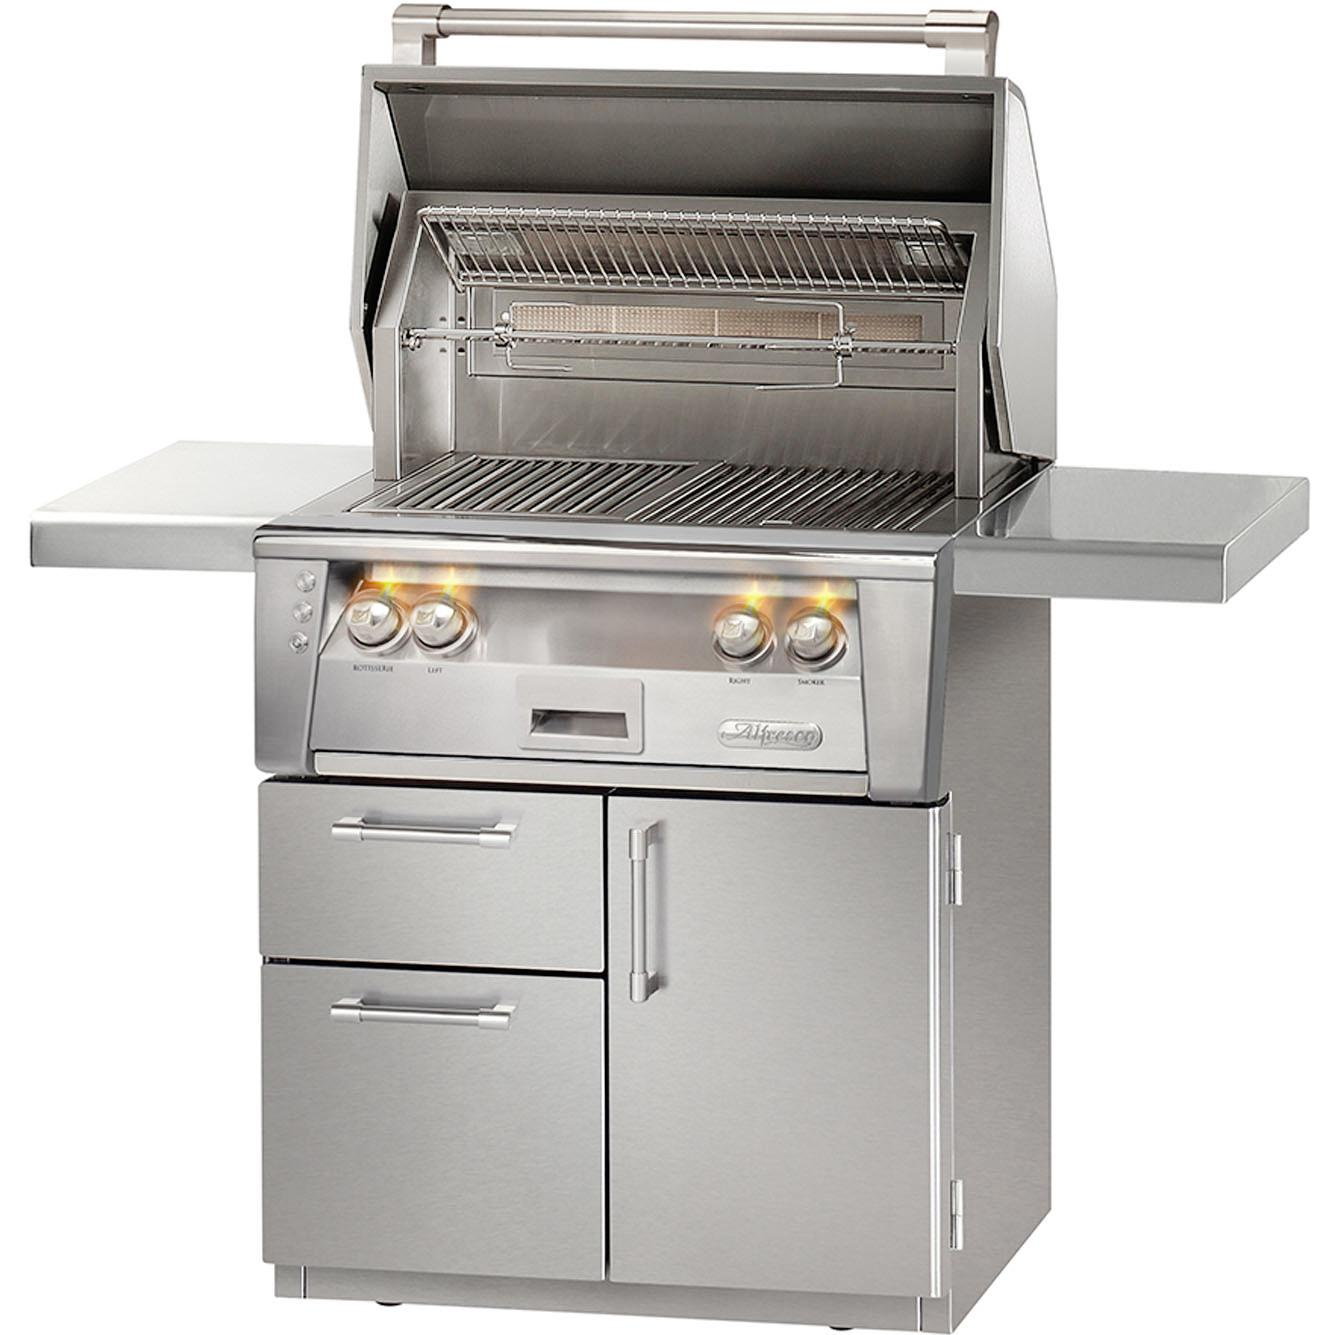 Alfresco LXE 30-Inch Propane Gas Grill On Deluxe Cart With Sear Zone And Rotisserie - ALXE-30SZCD-LP 2911858